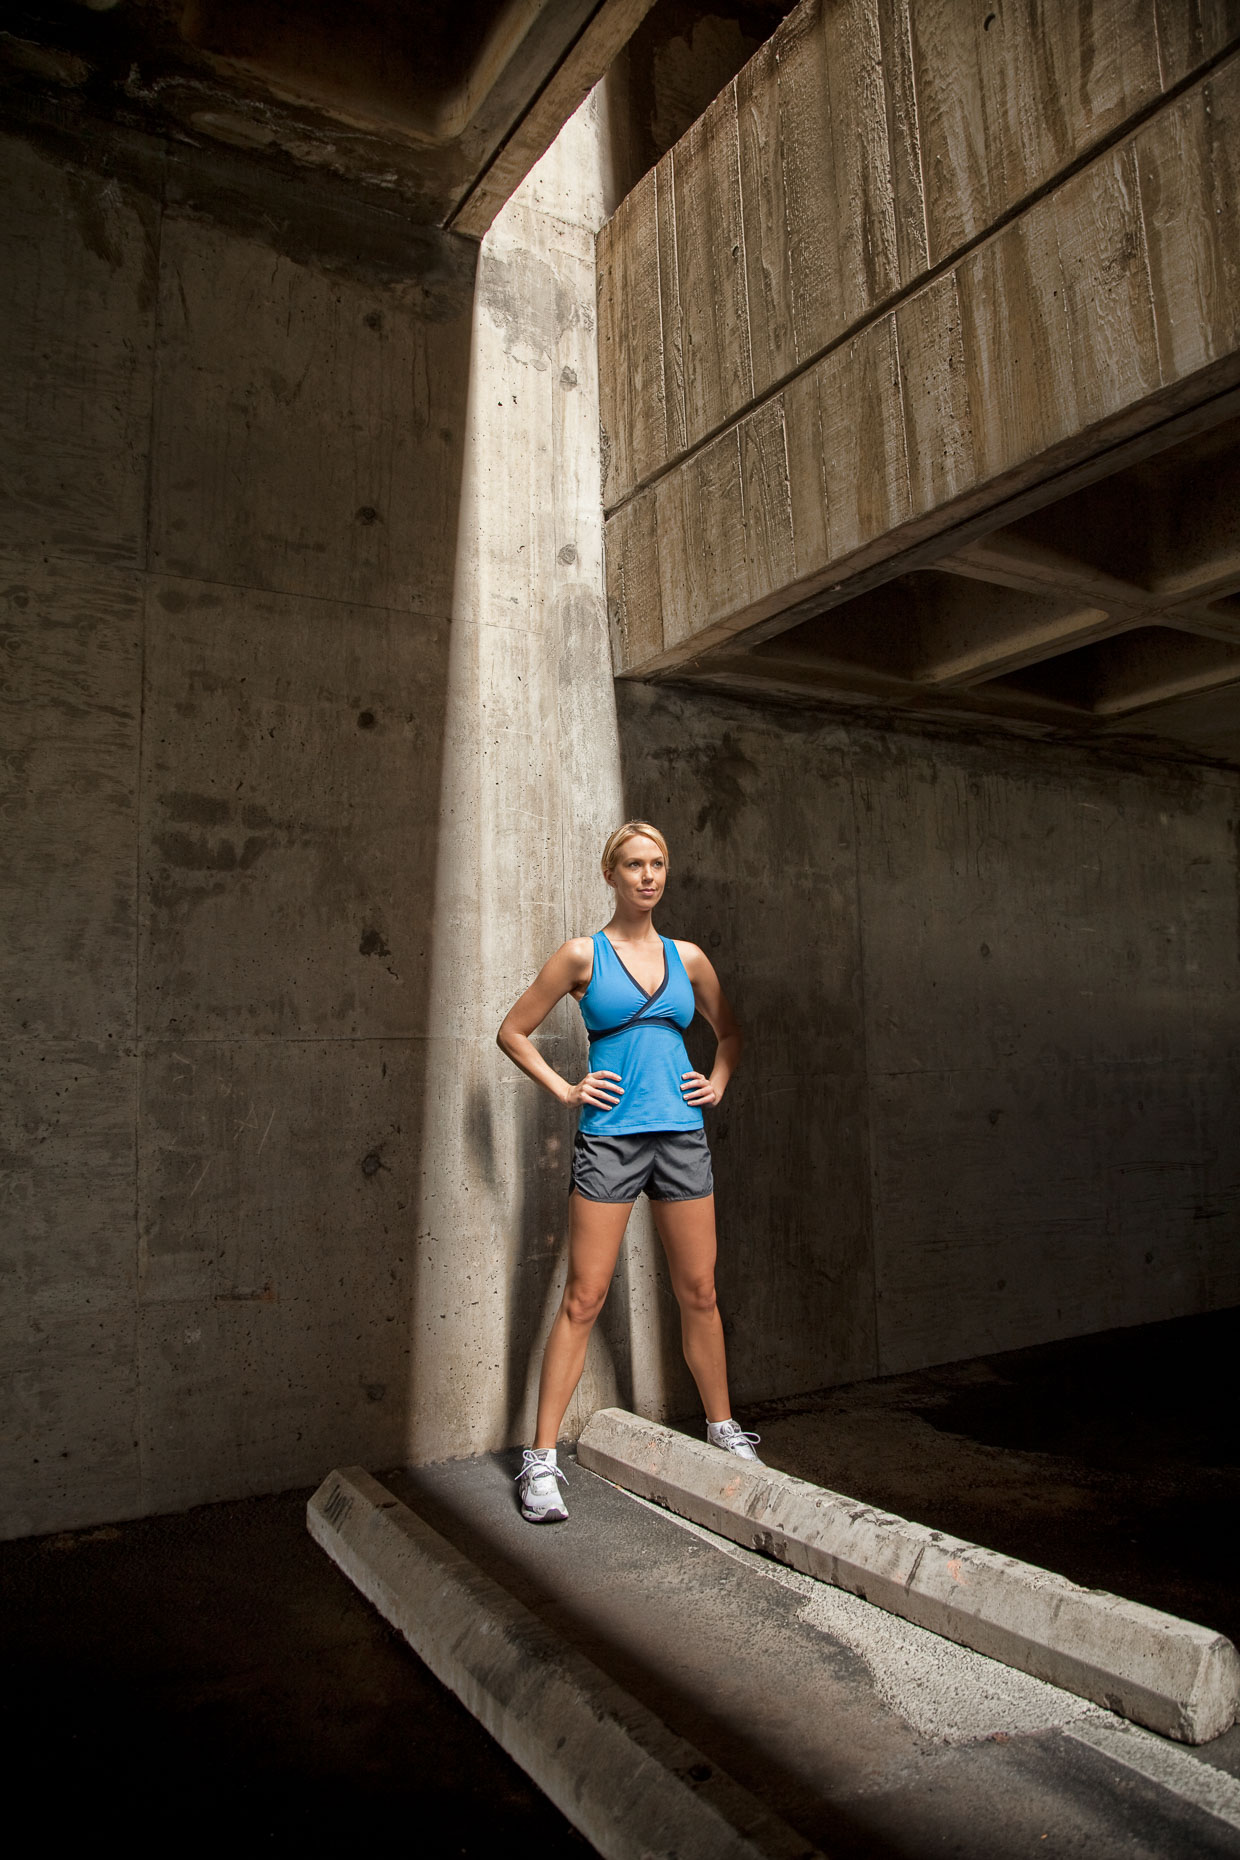 Female runner in blue running clothes rests in concrete parking garage with shaft of light on her by David Zaitz Photography.